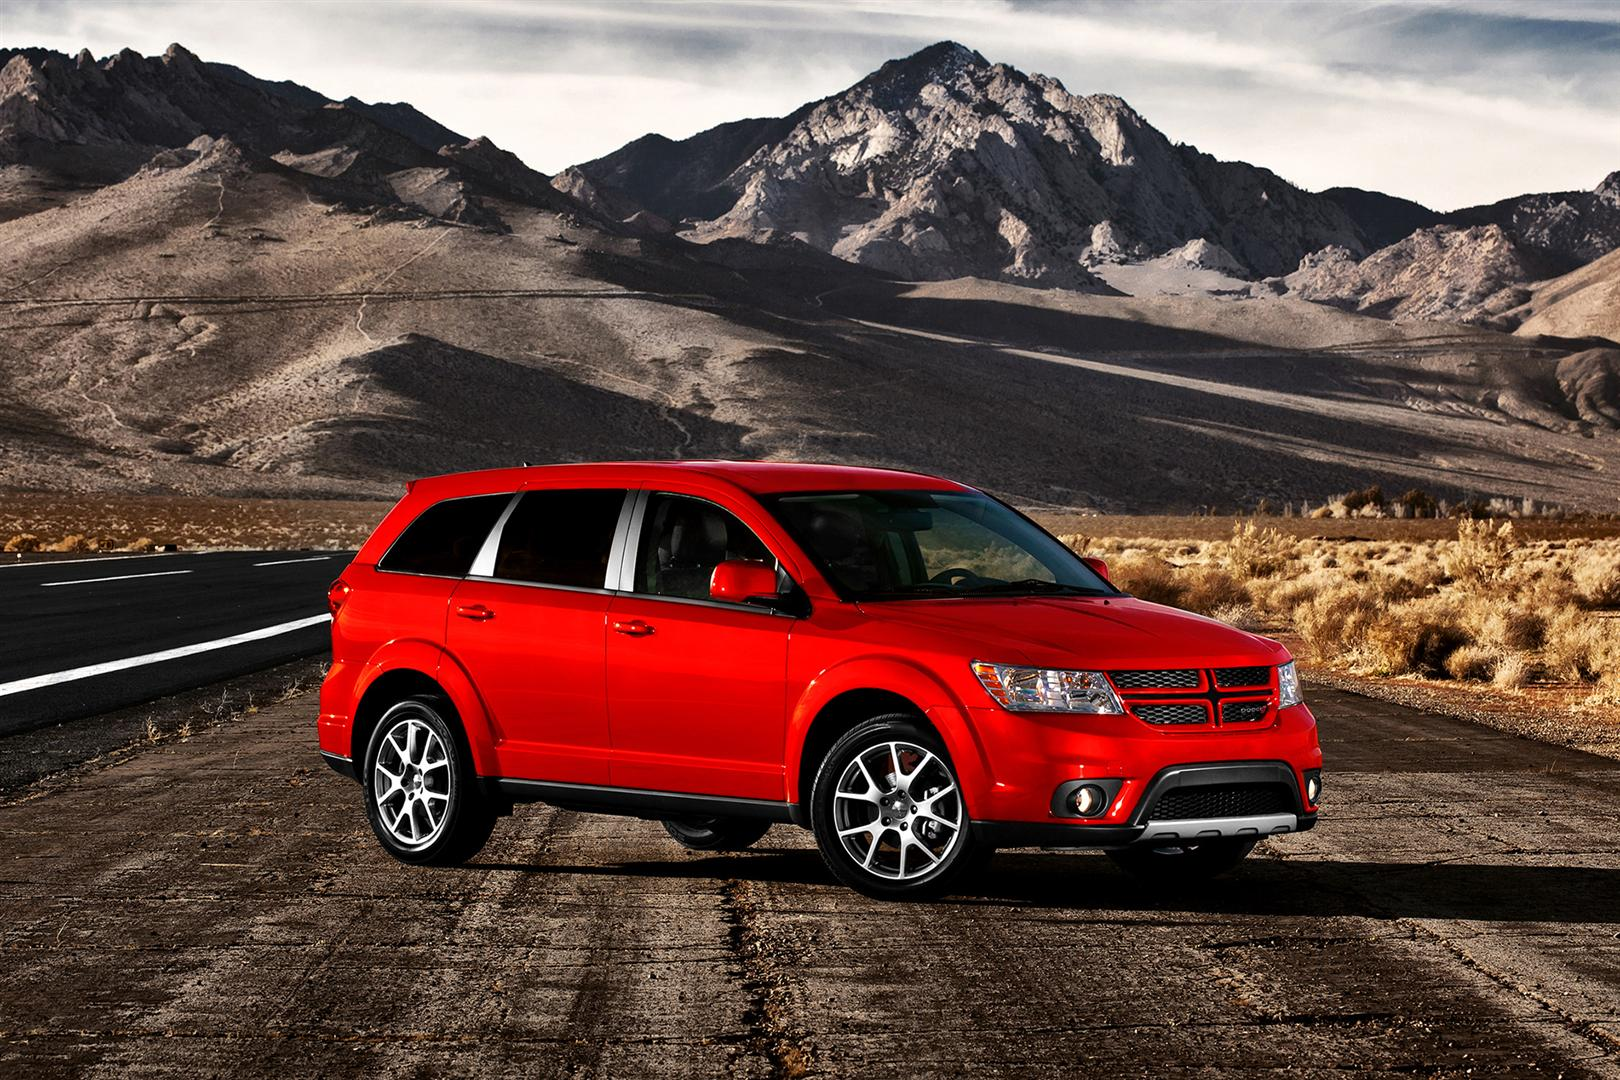 2020 Dodge Journey Release Date & Price